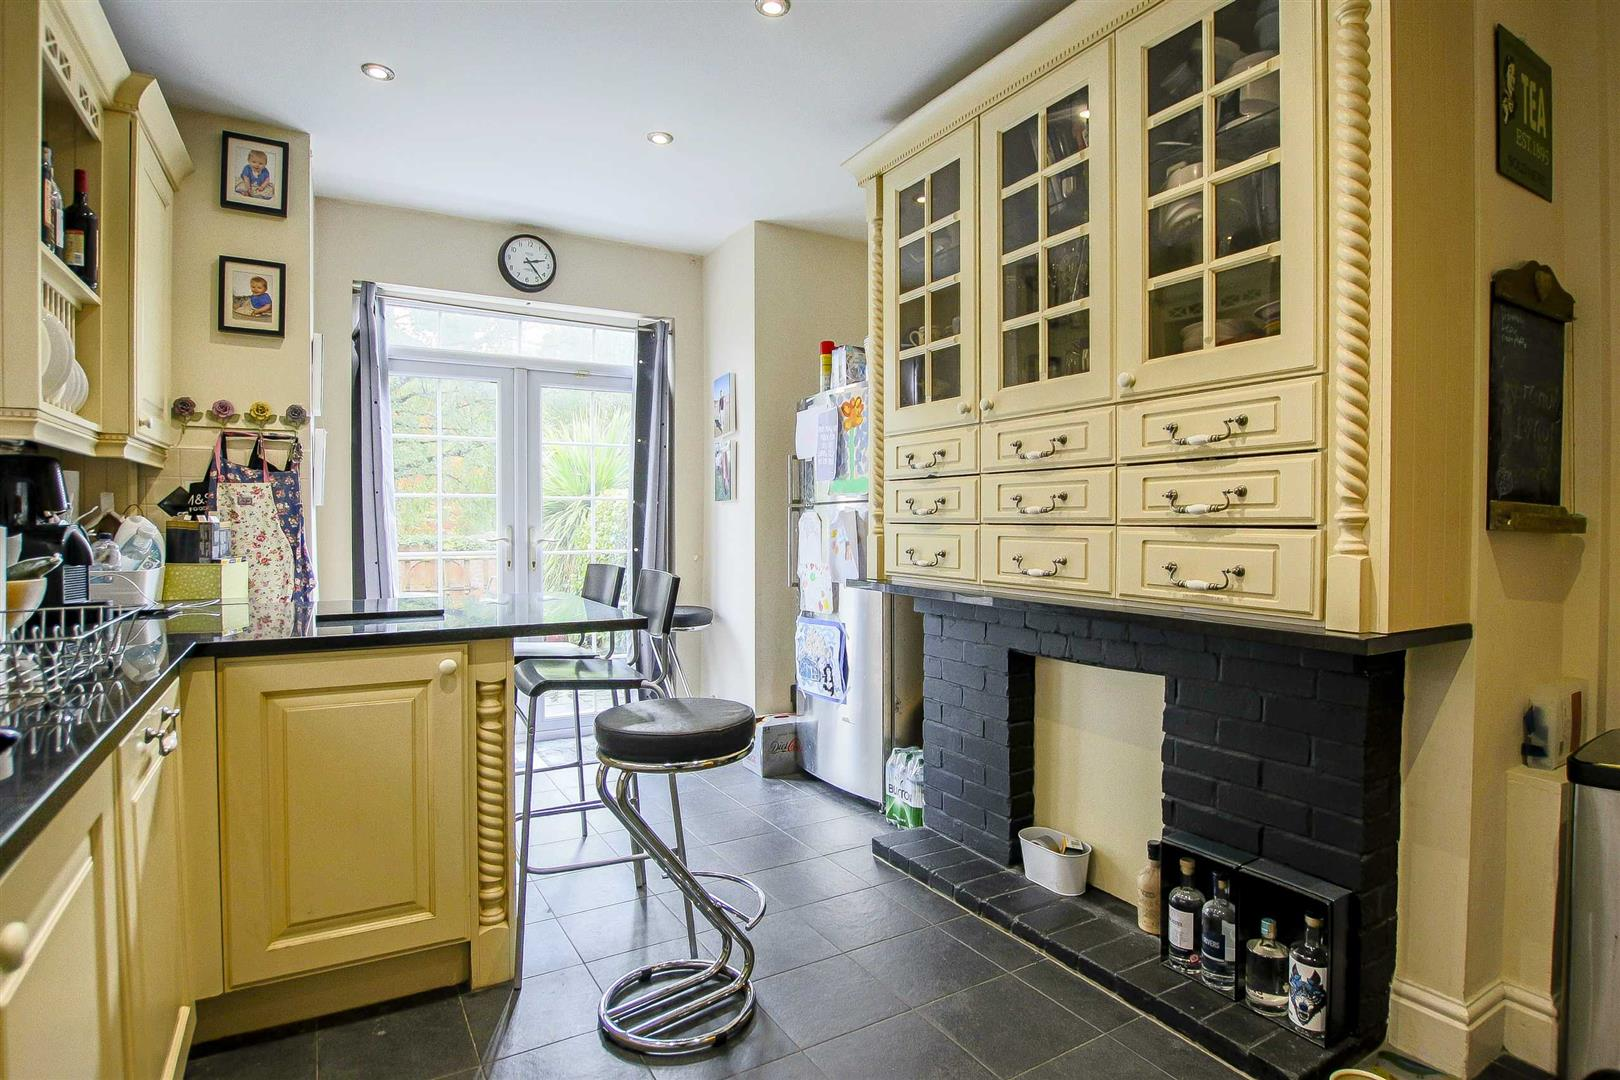 5 Bedroom Terraced House For Sale - Image 14